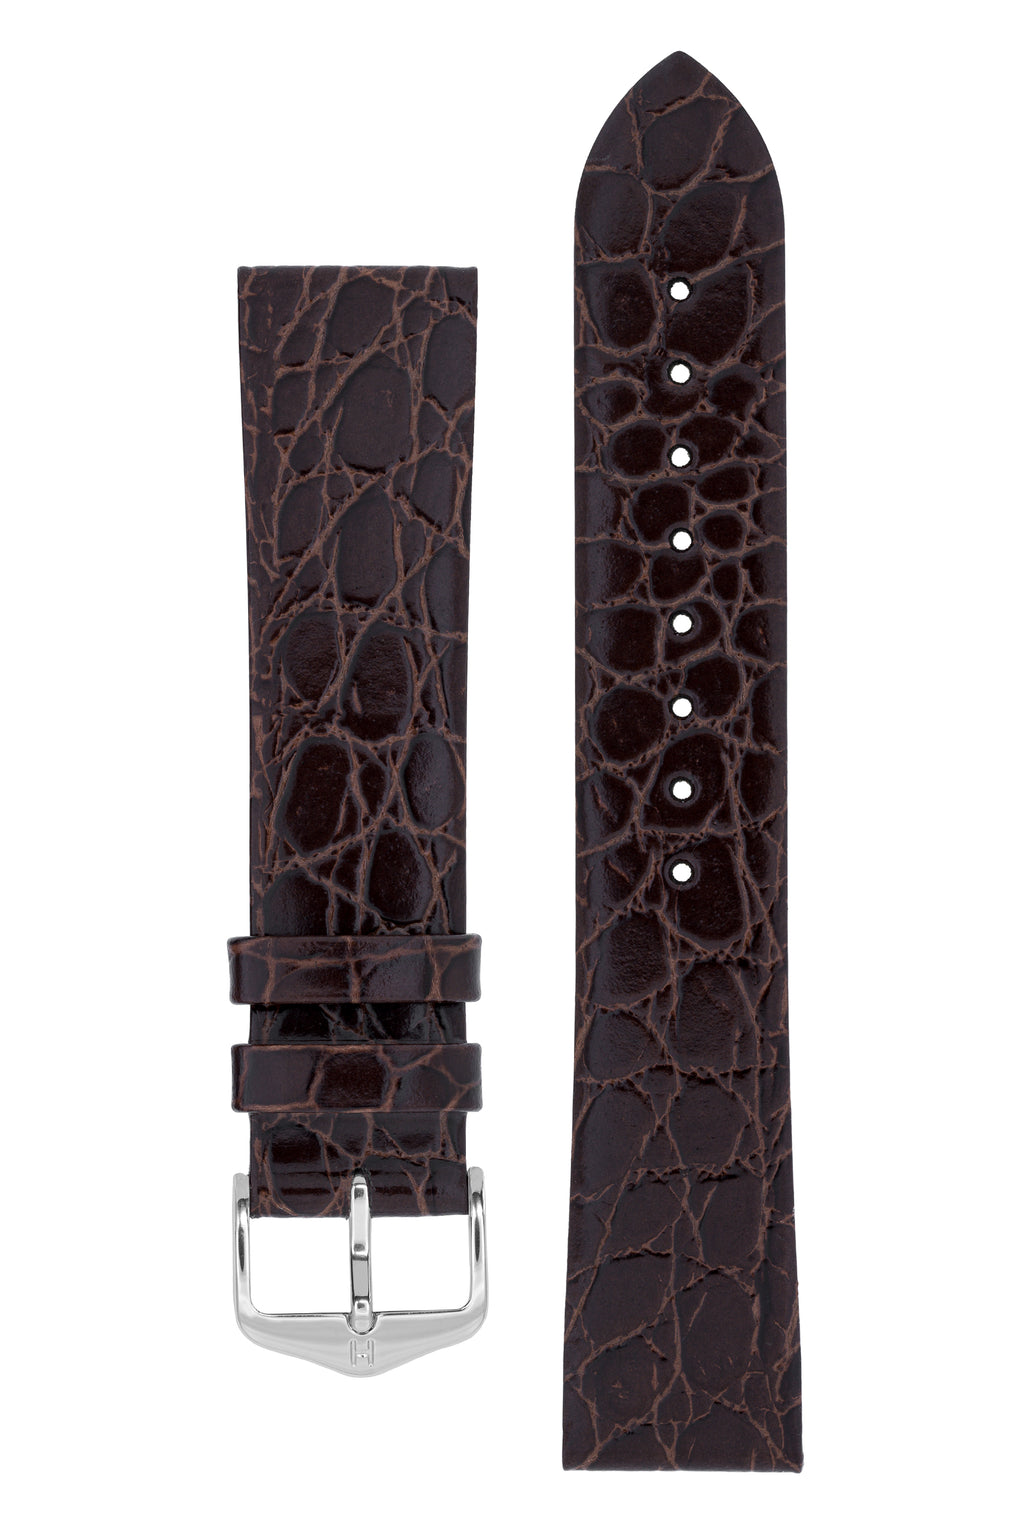 Hirsch SOBEK Crocodile Embossed Leather Watch Strap in BROWN